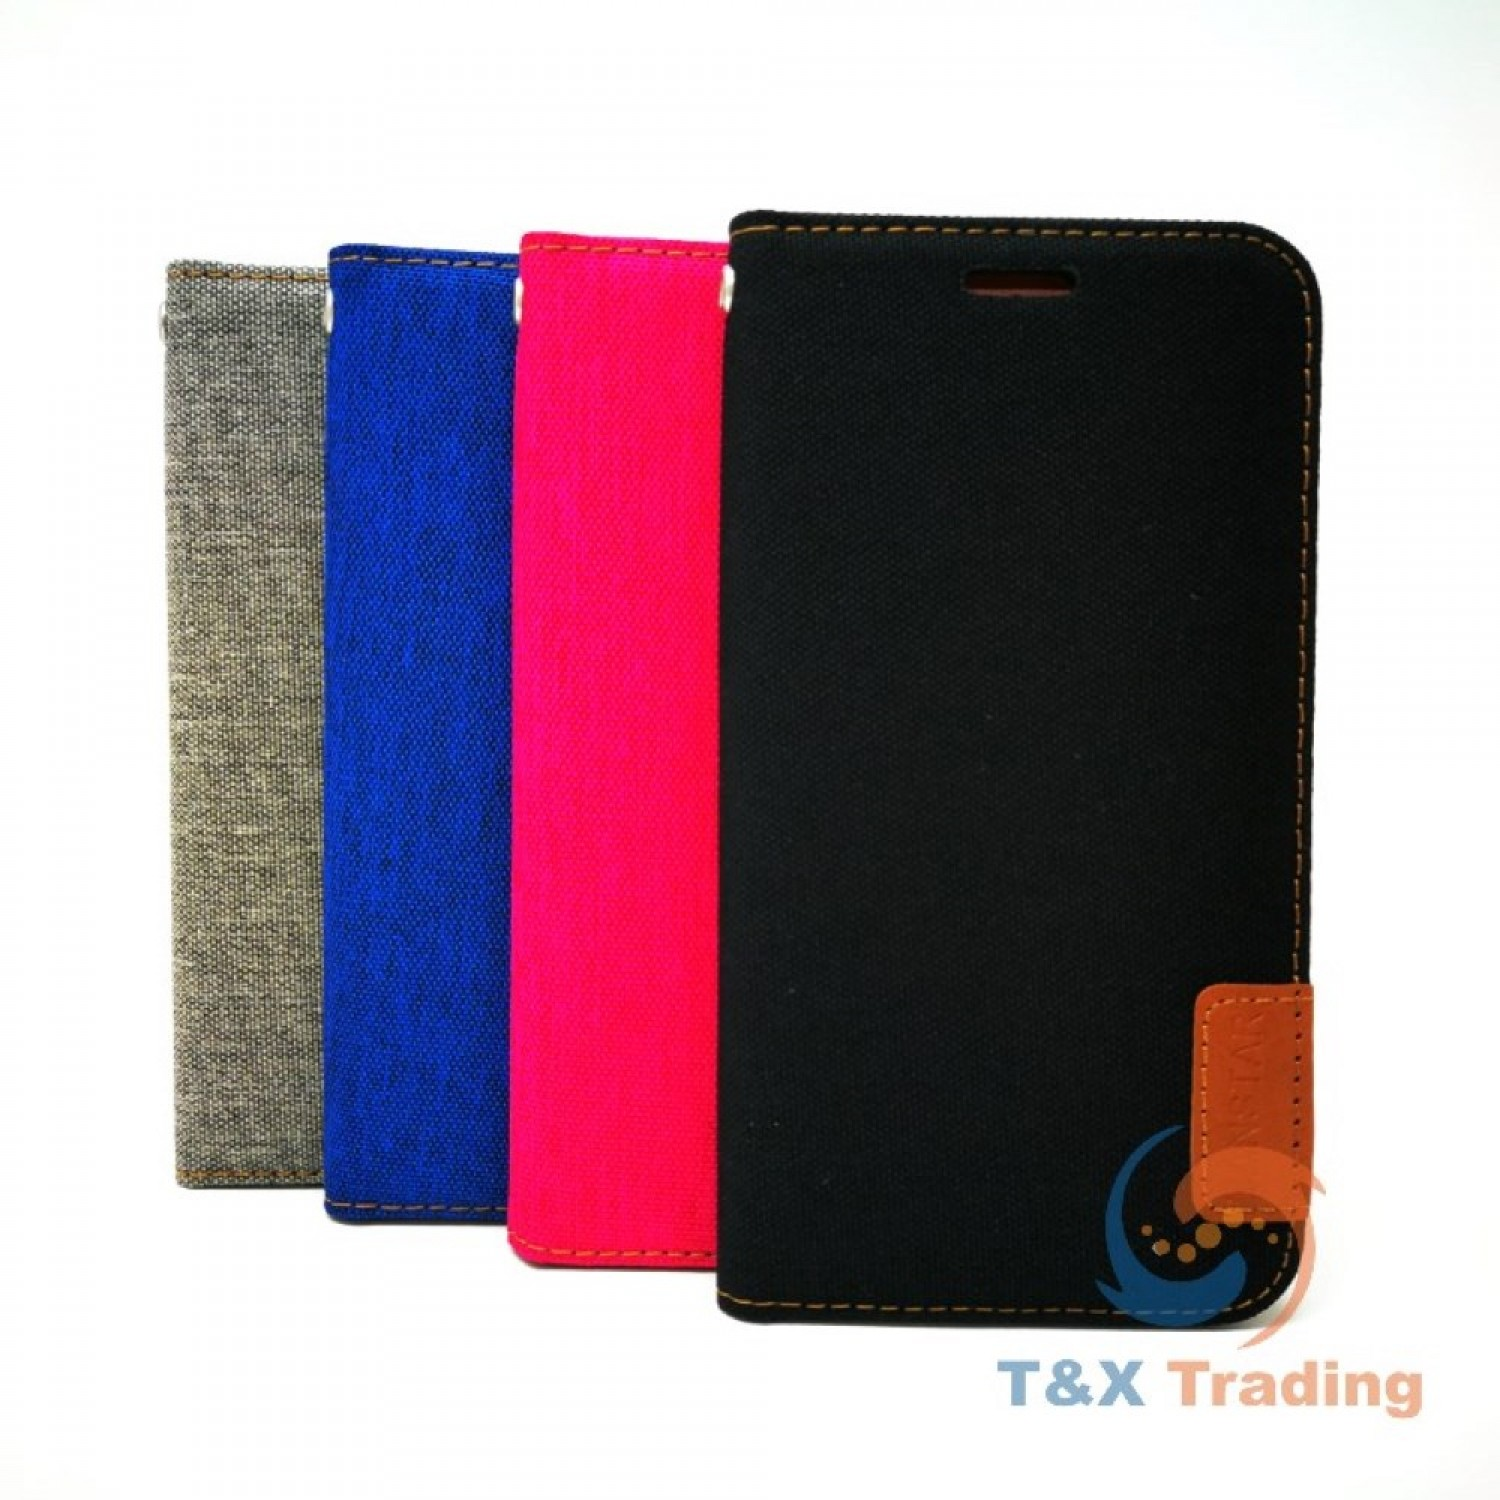 Apple iPhone X / XS - TanStar Fabric Wallet Case with Magnetic Closure